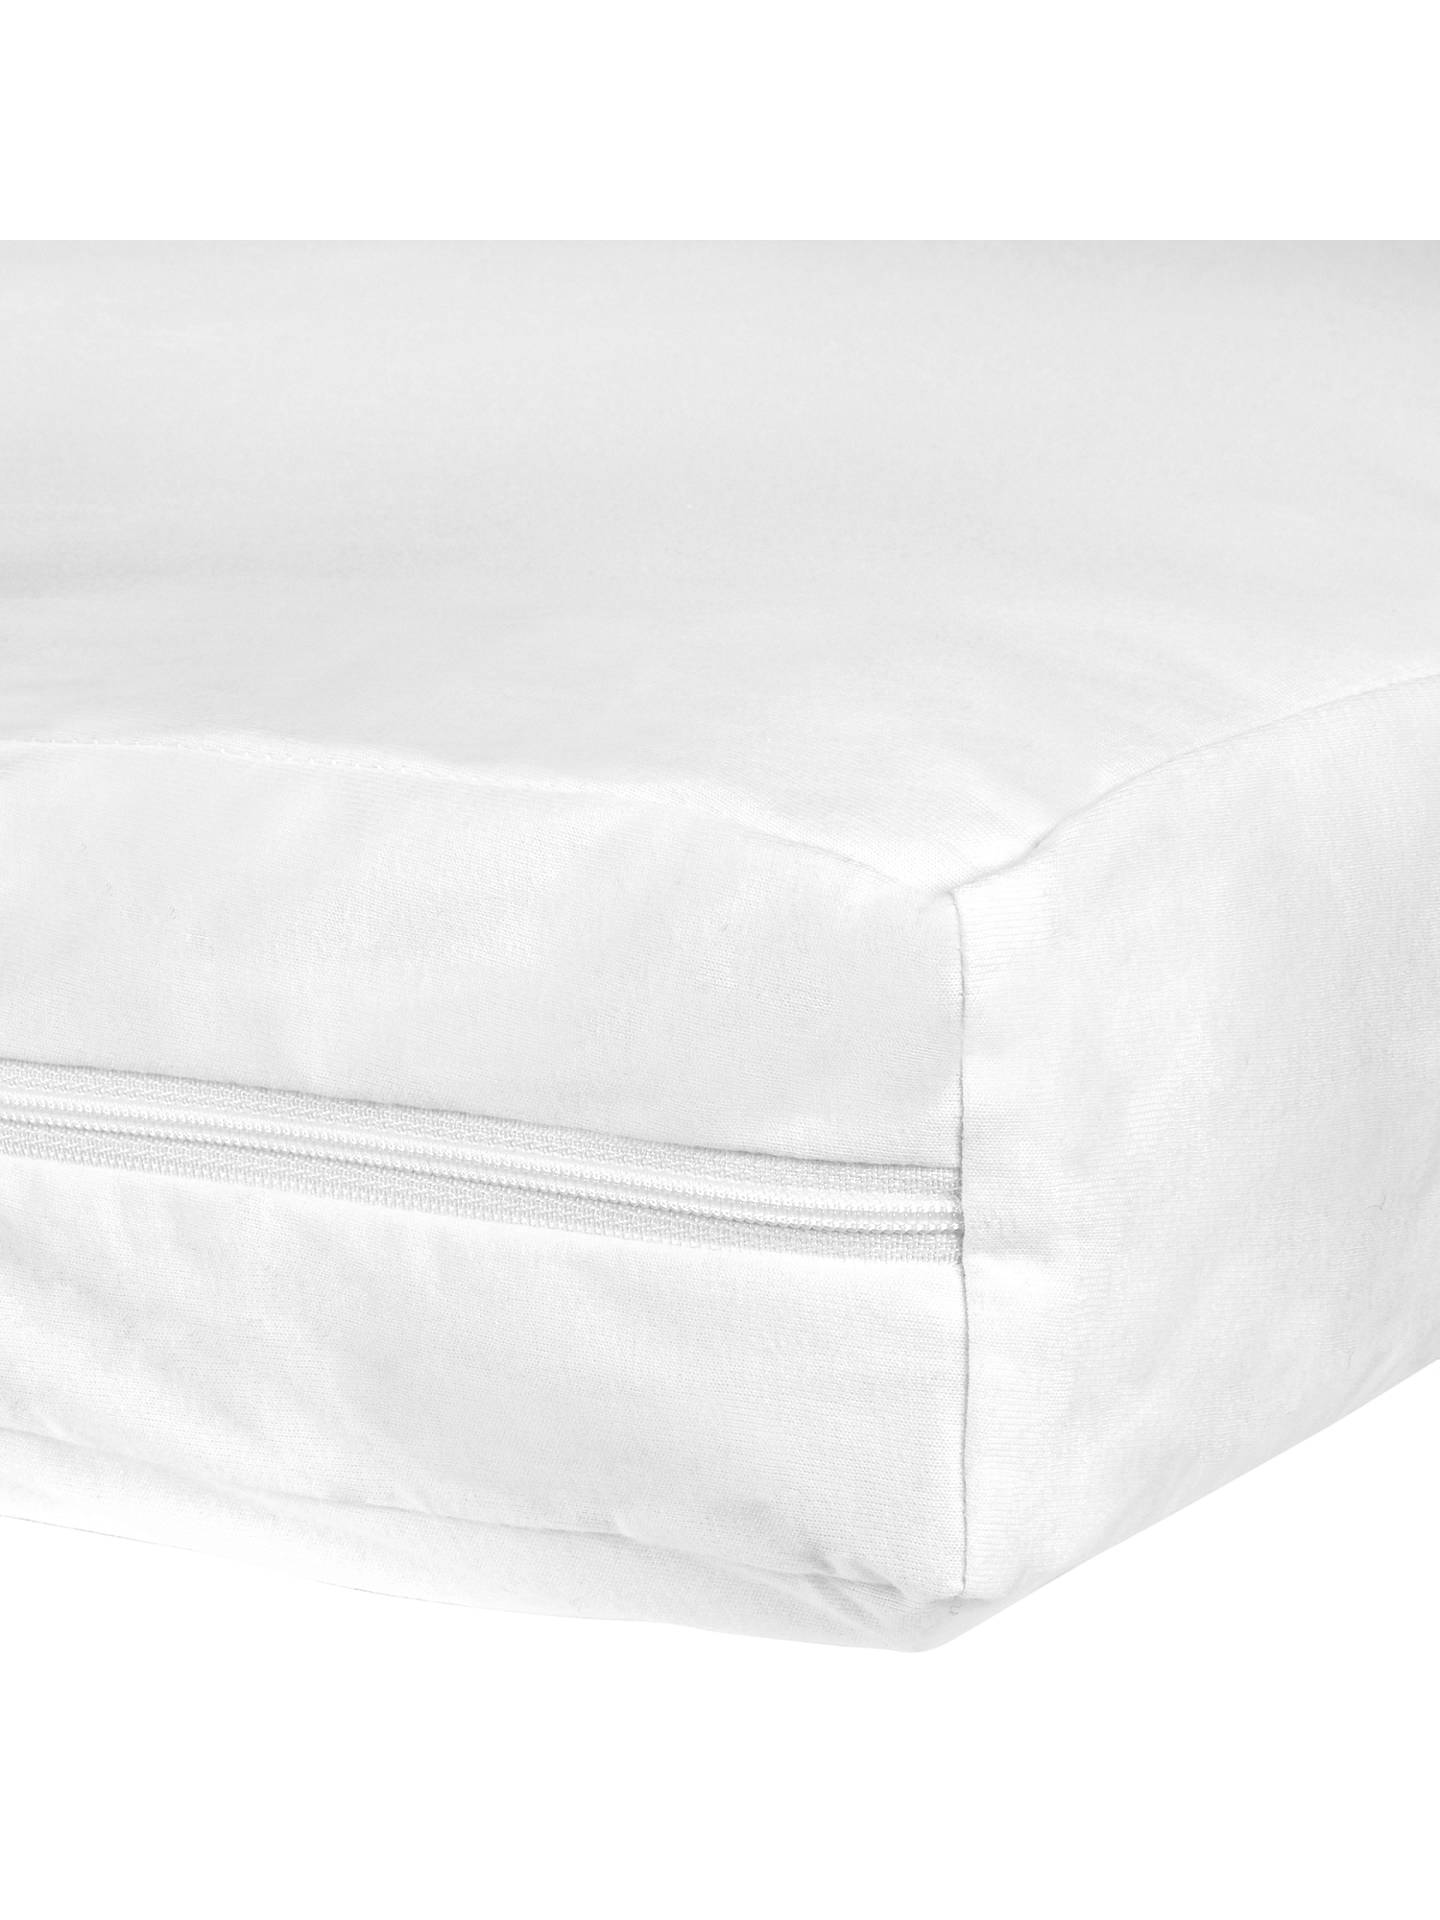 BuyJohn Lewis & Partners Micro-Fresh Anti Allergy Small Cotbed Mattress Protector Online at johnlewis.com